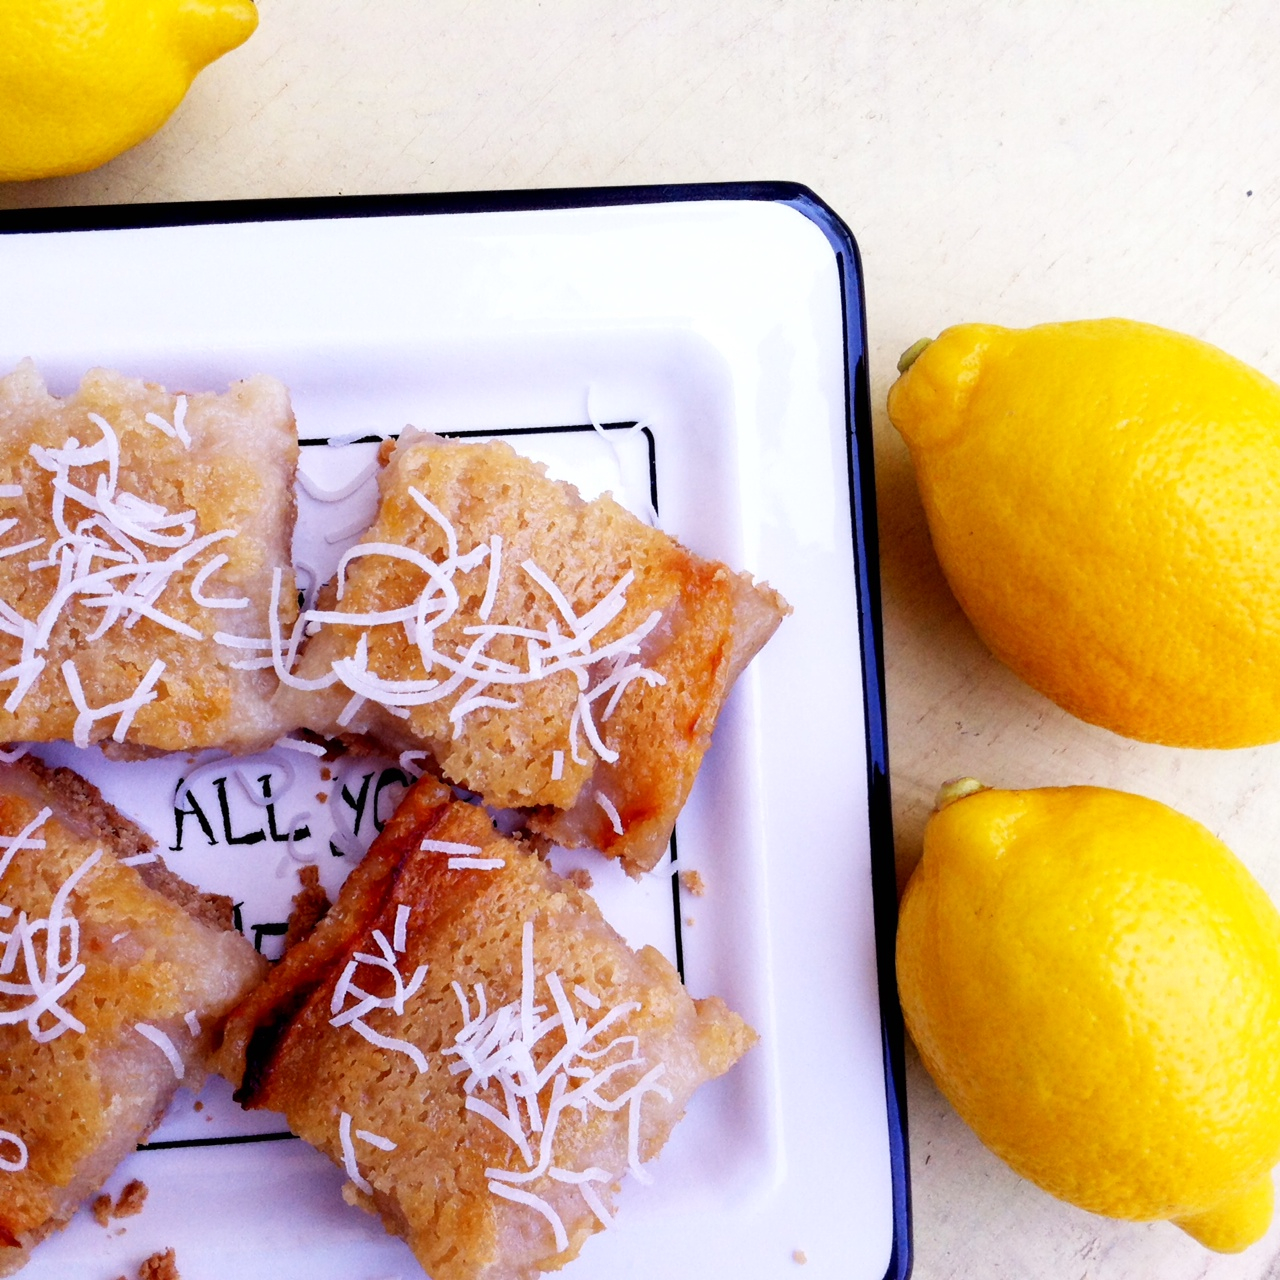 A Simply Raw Life: LEMON-COCONUT TOFU BARS